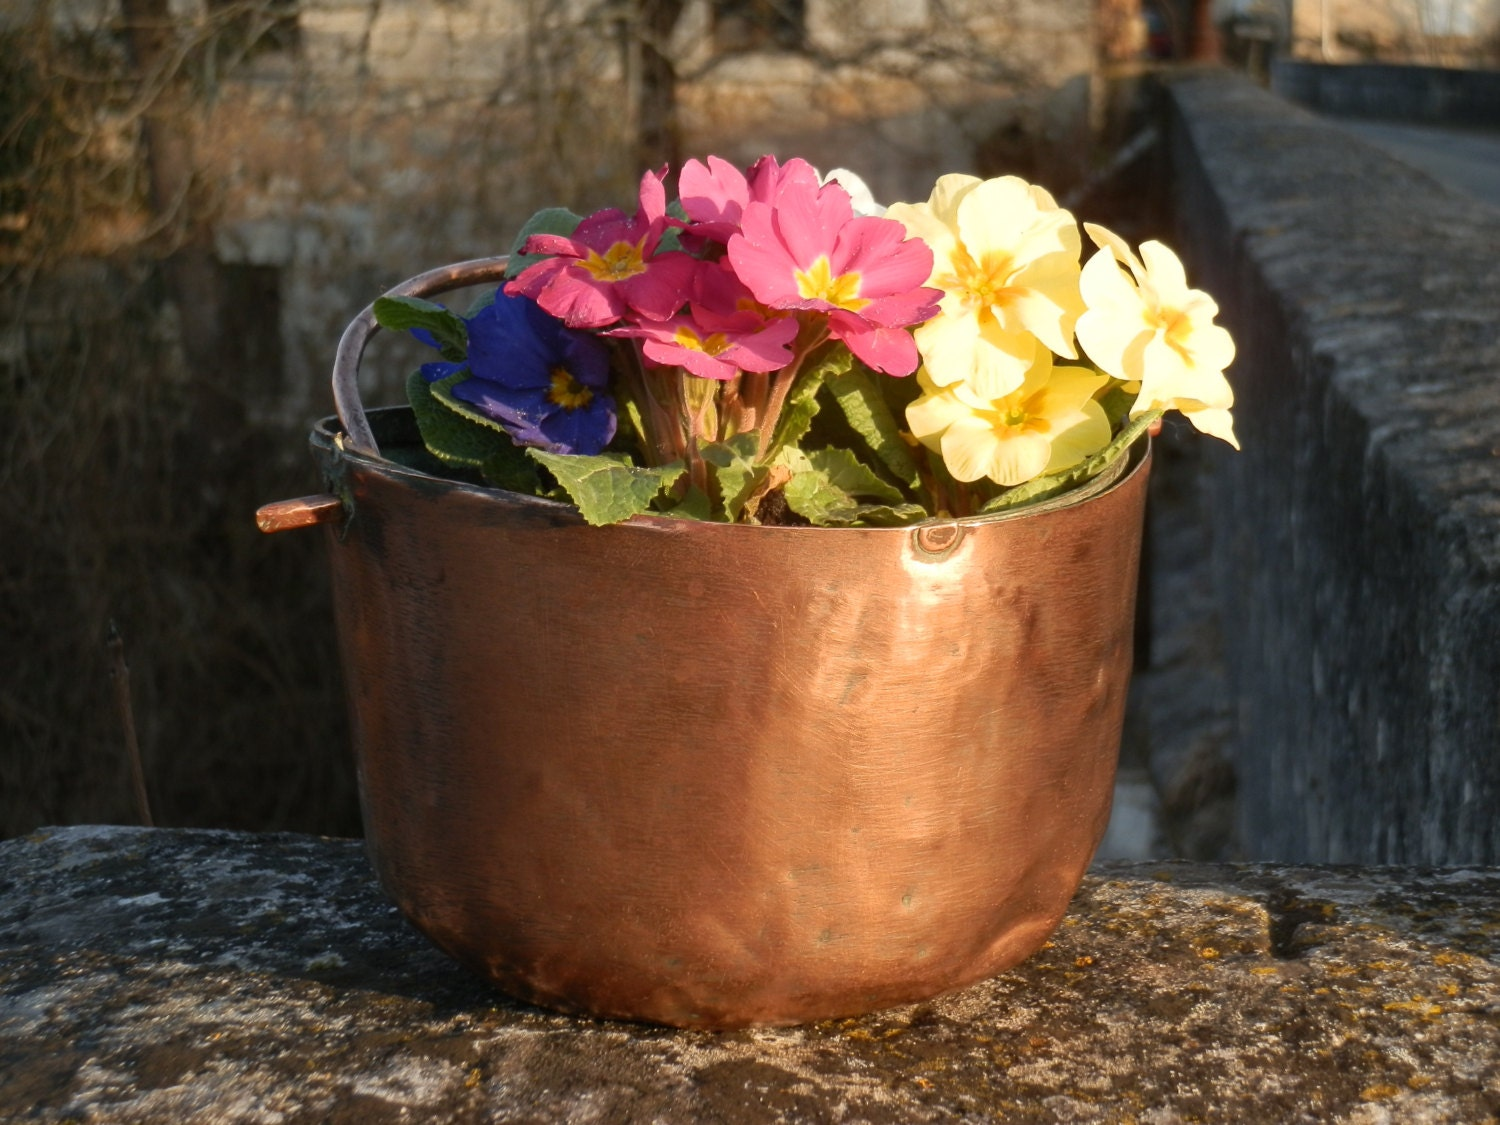 Copper Cauldron. French Vintage Cauldron, Hanging Planter.  French Country French Provincial Decor - GoshnPoche